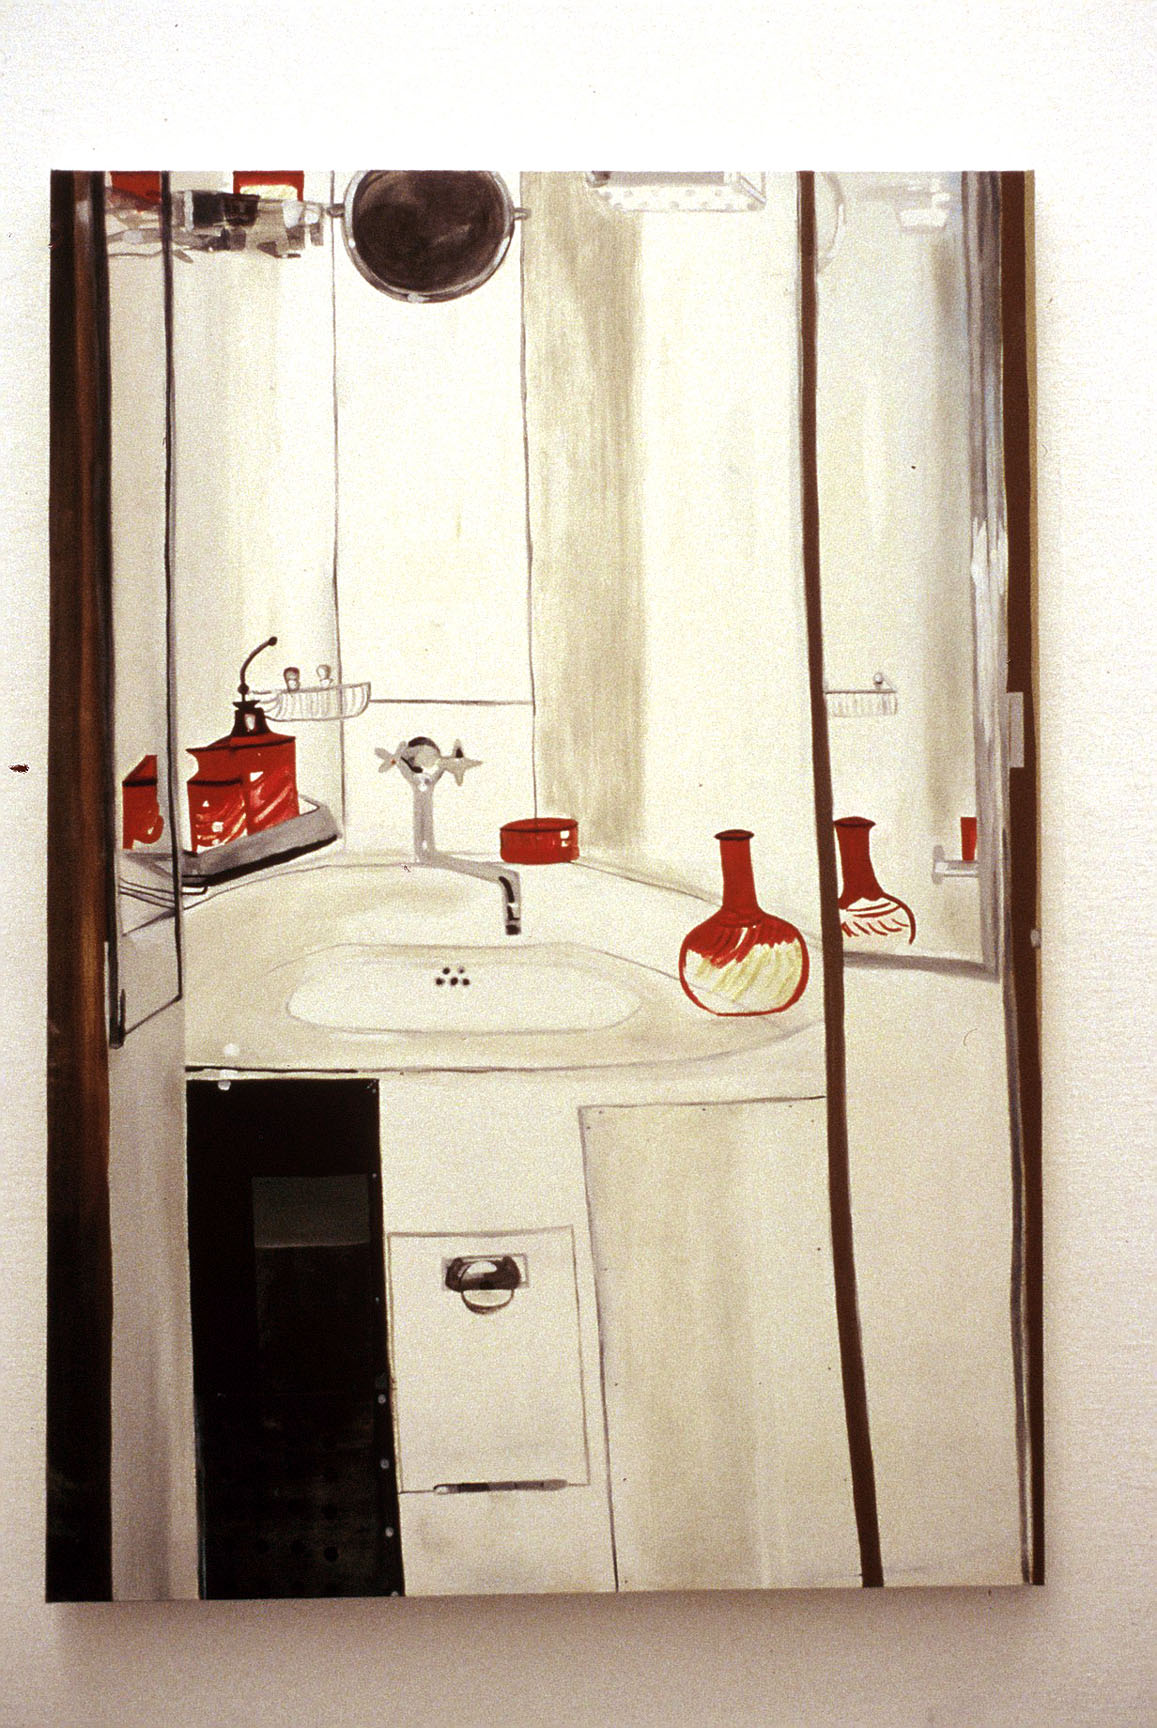 Sink Cabinet     Oil on Canvas 167 x 116 cms